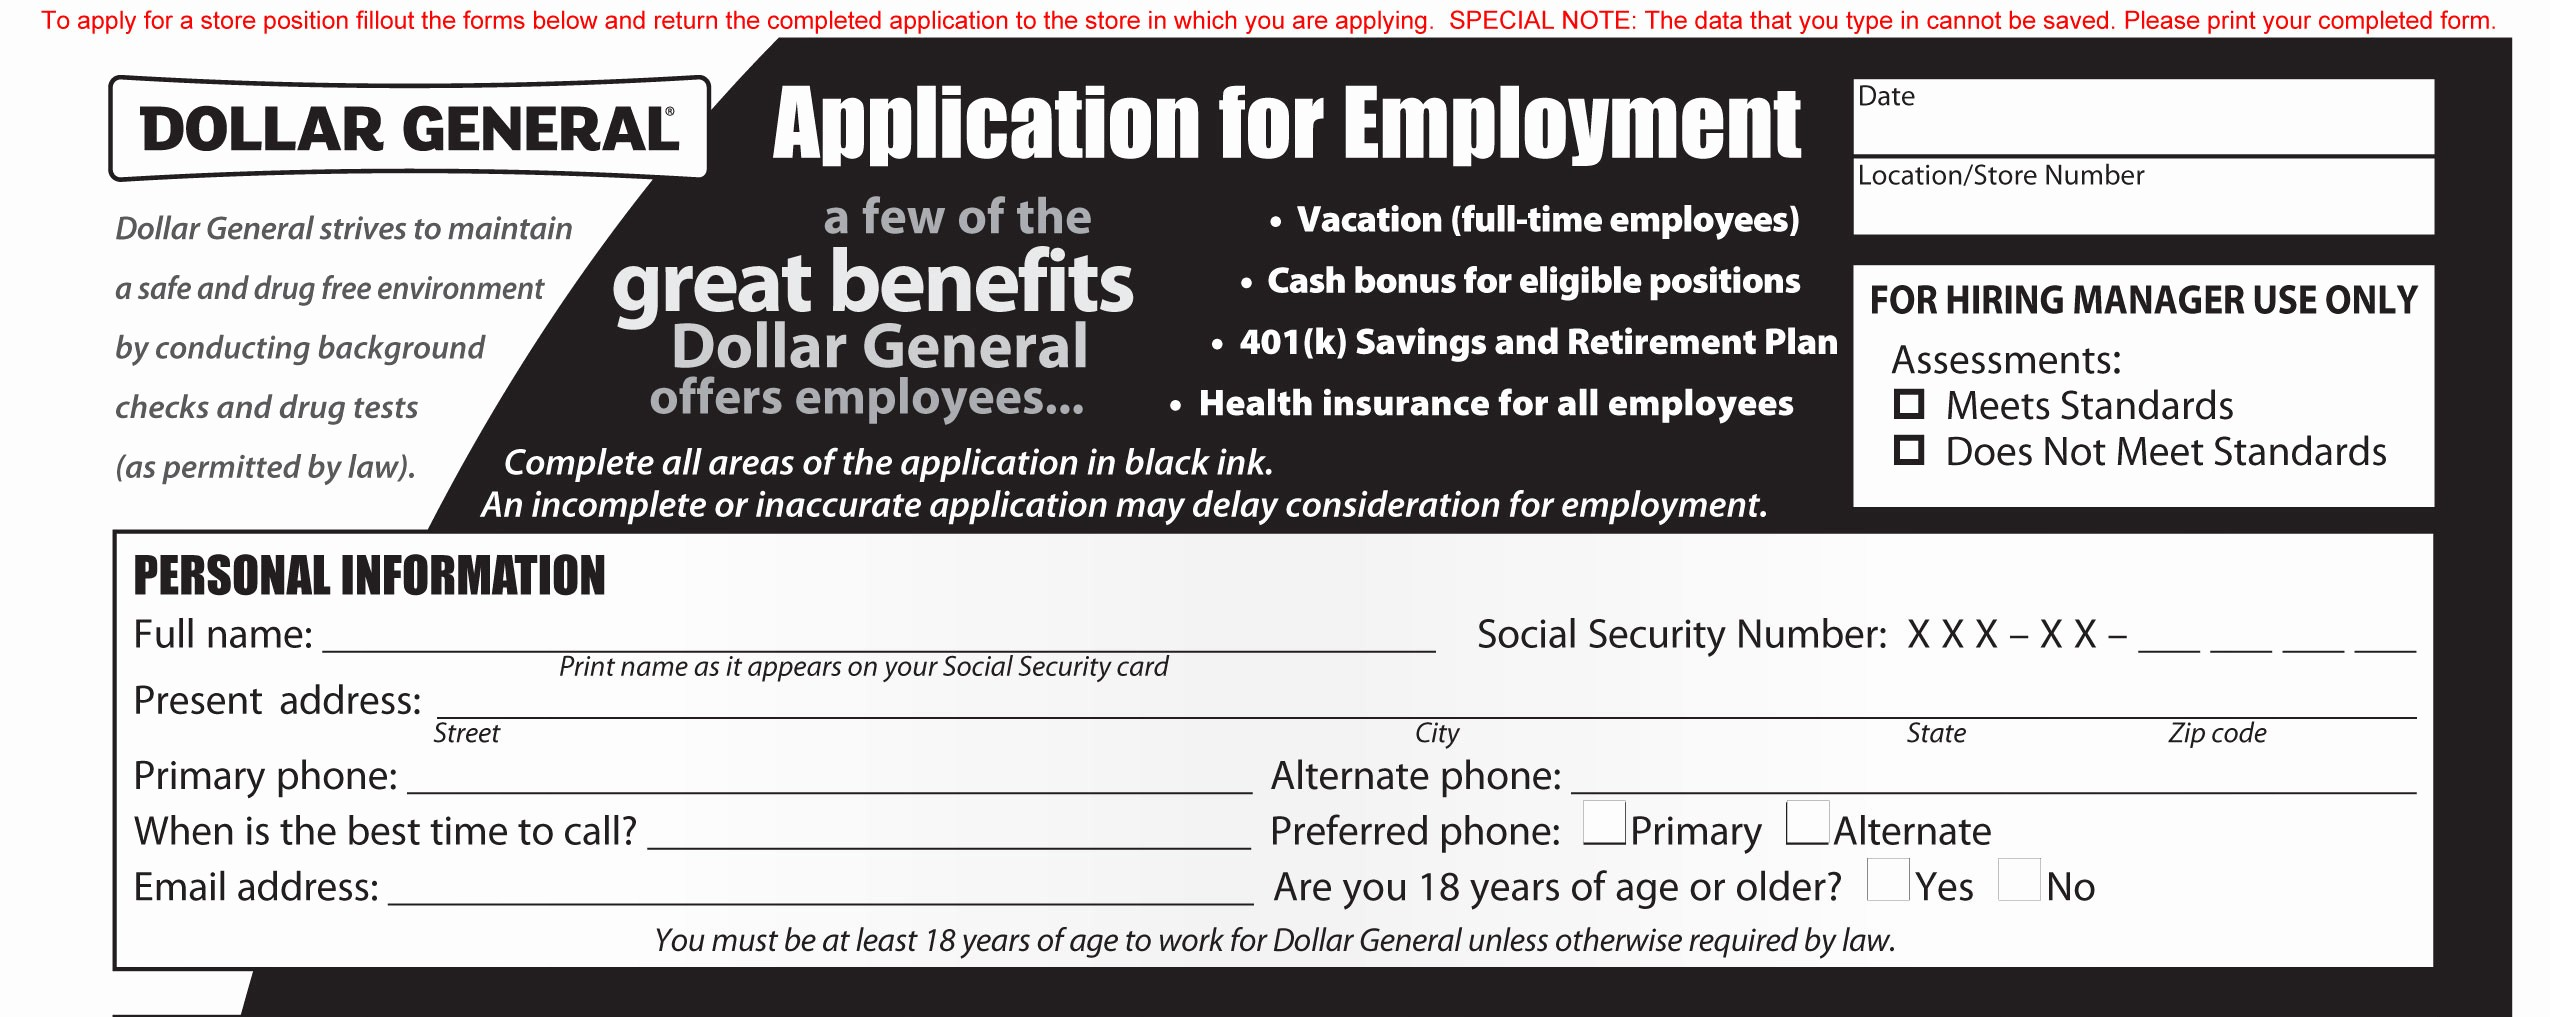 Generic Job Application to Print Lovely Dollar General Job Application Printable Employment Pdf